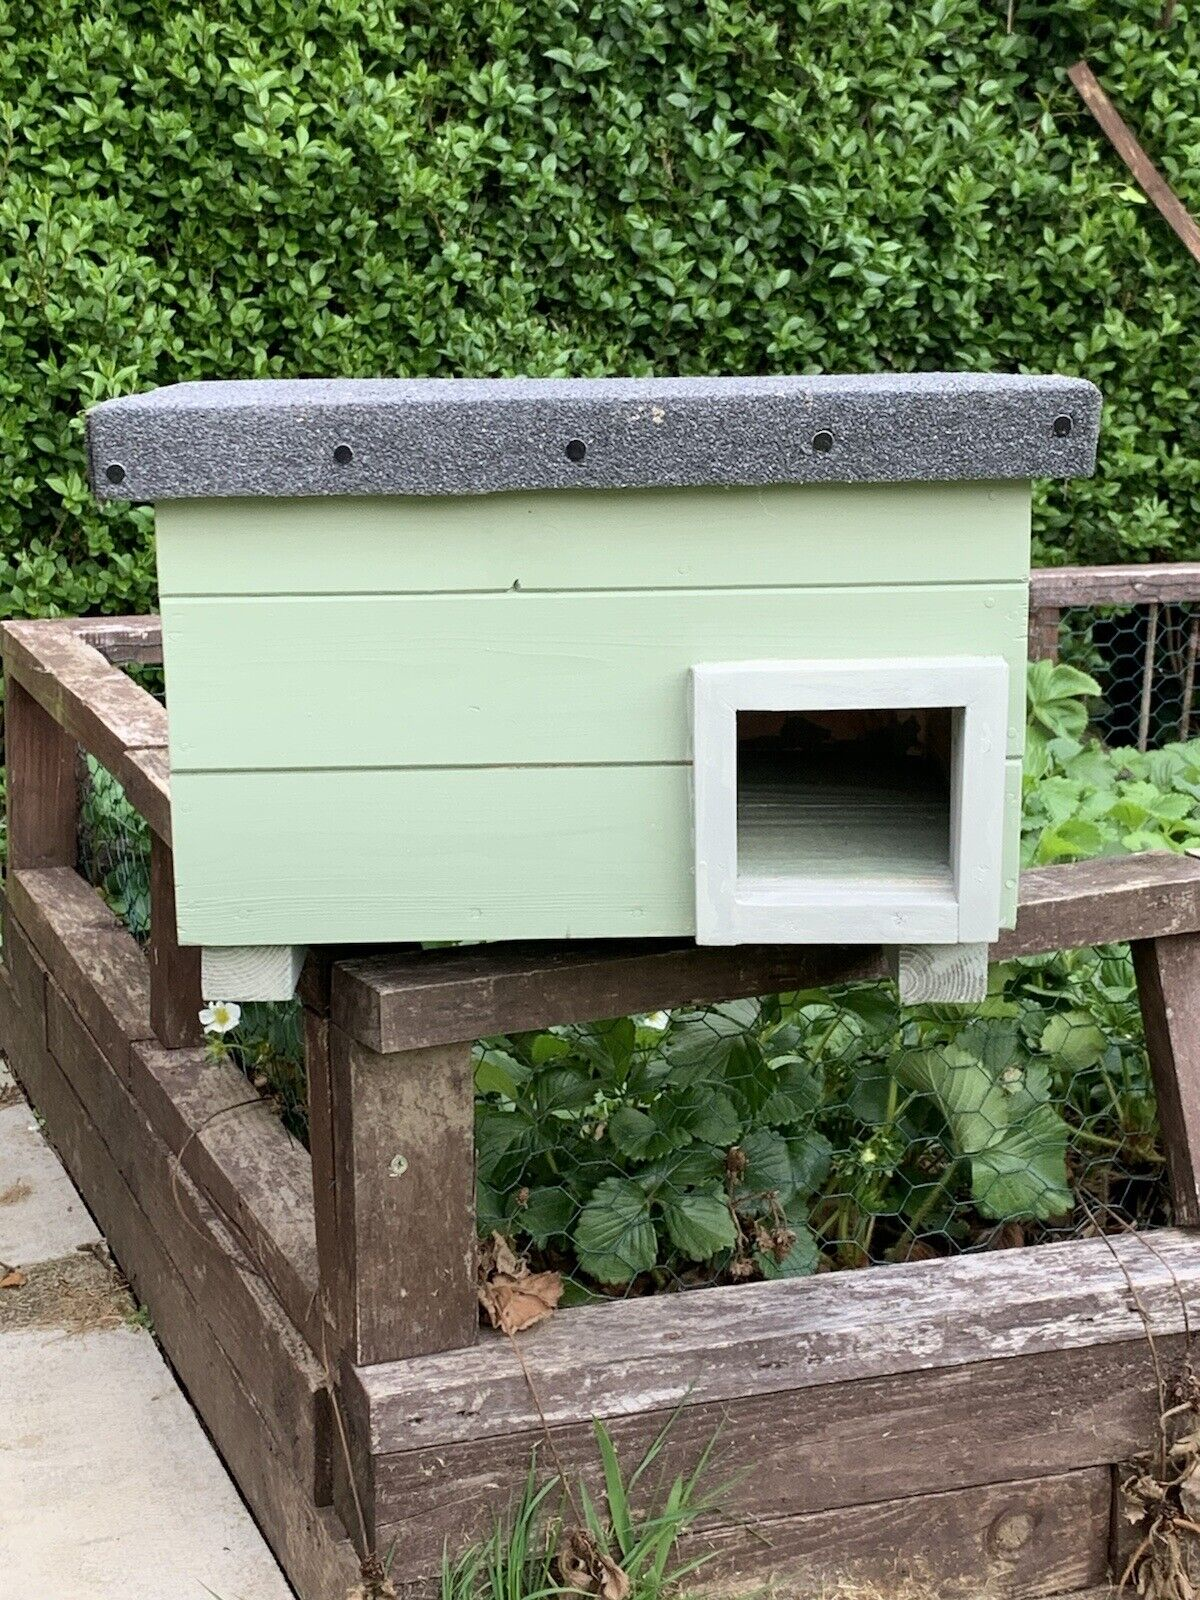 Hedgehog Nest Box. We Will Donate For Every Box Sold To Hedgehog Charity !!